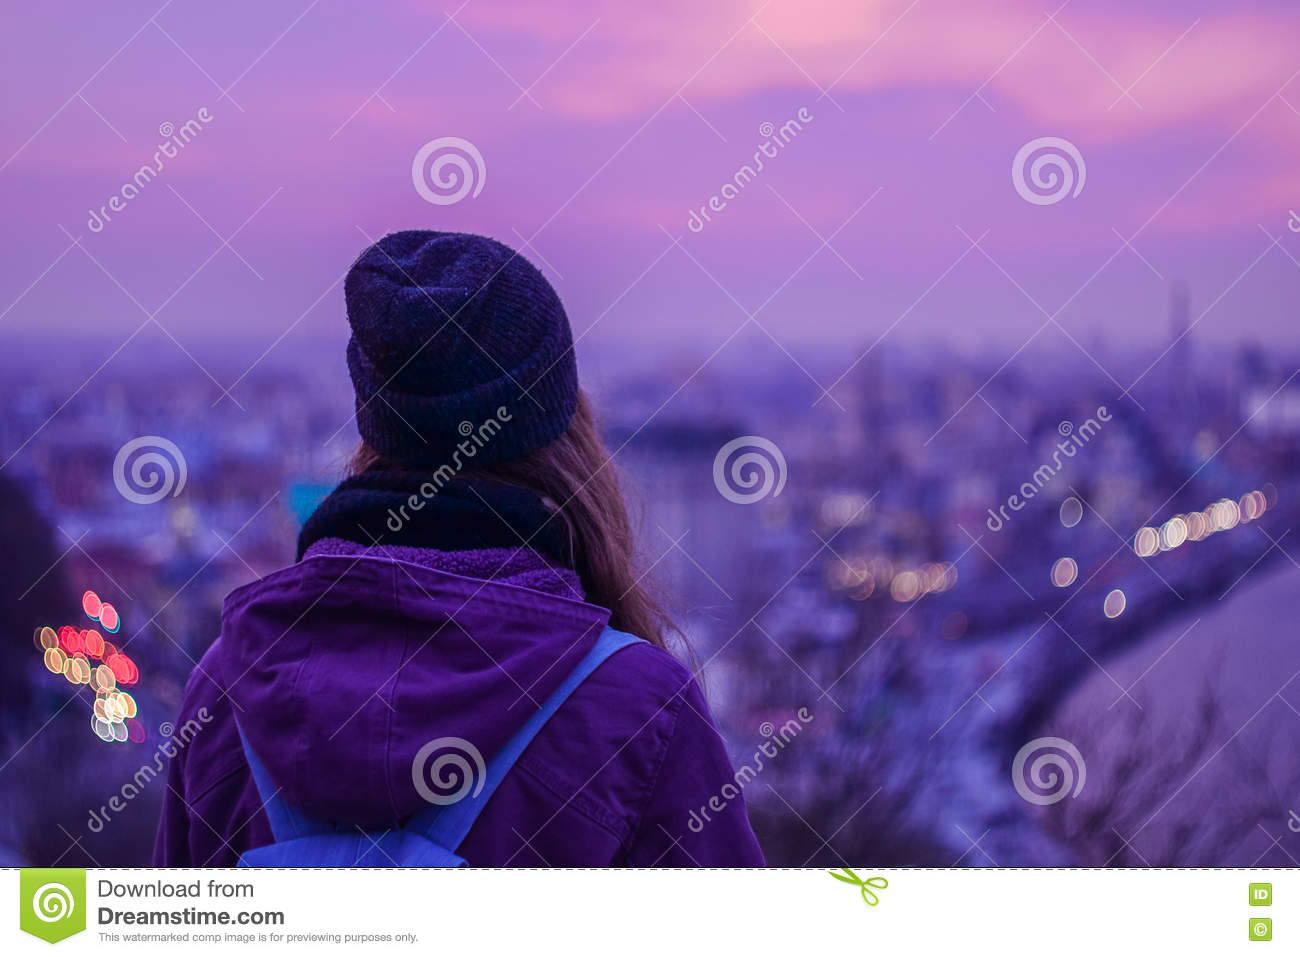 Hipster girl traveler looking at winter evening cityscape, purple violet sky and city lights